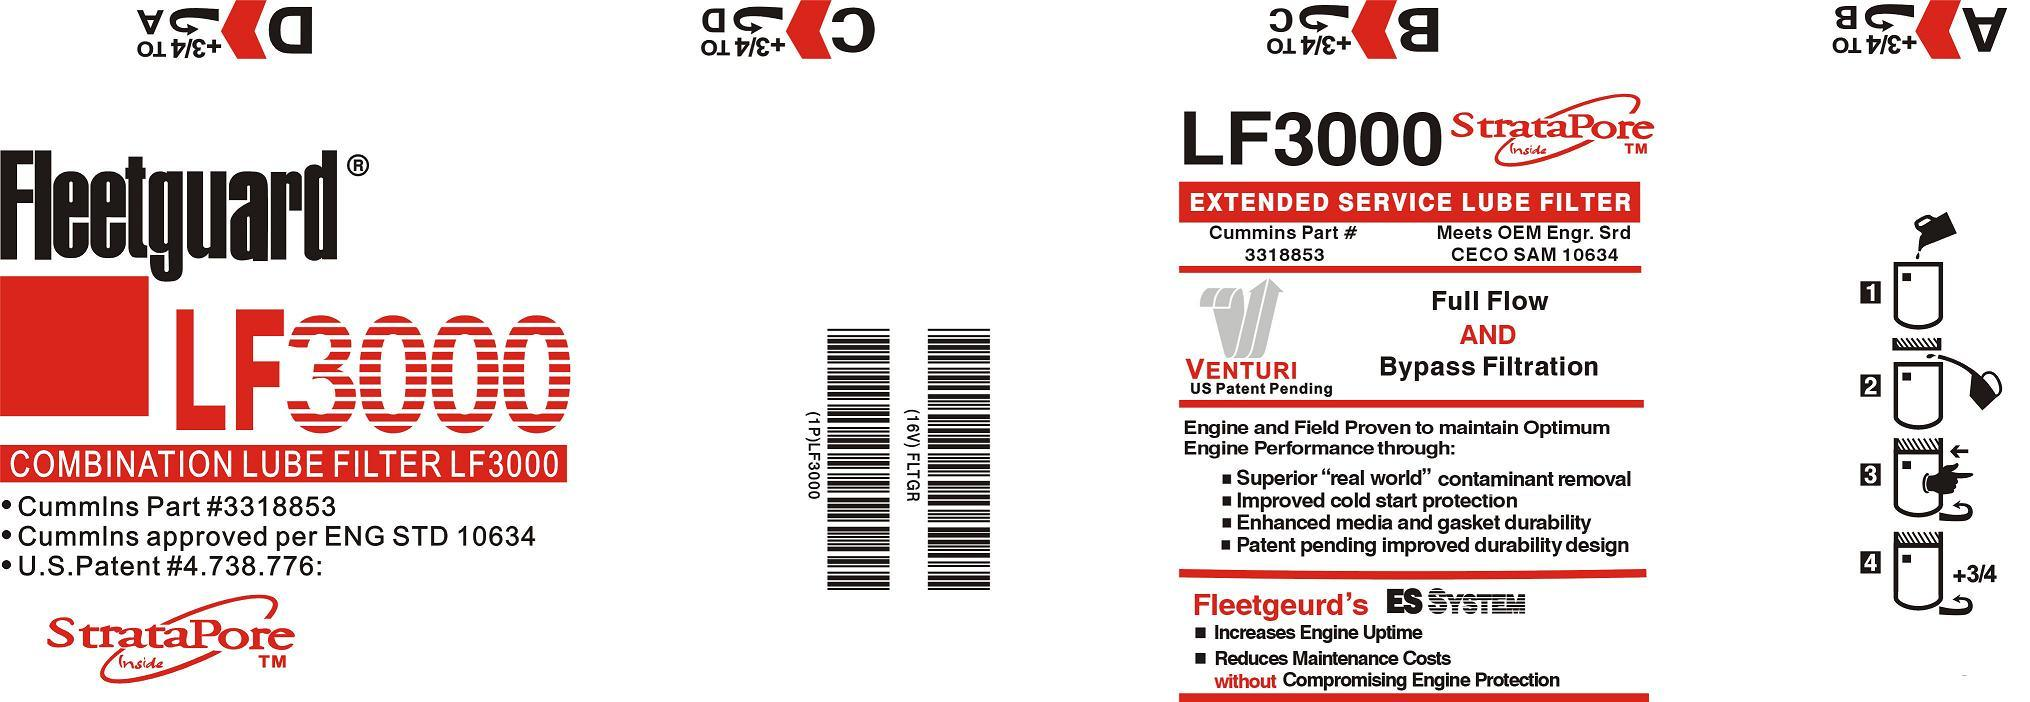 Oil Filter Lf691A Replaces Fleetguard for Cummins pictures & photos